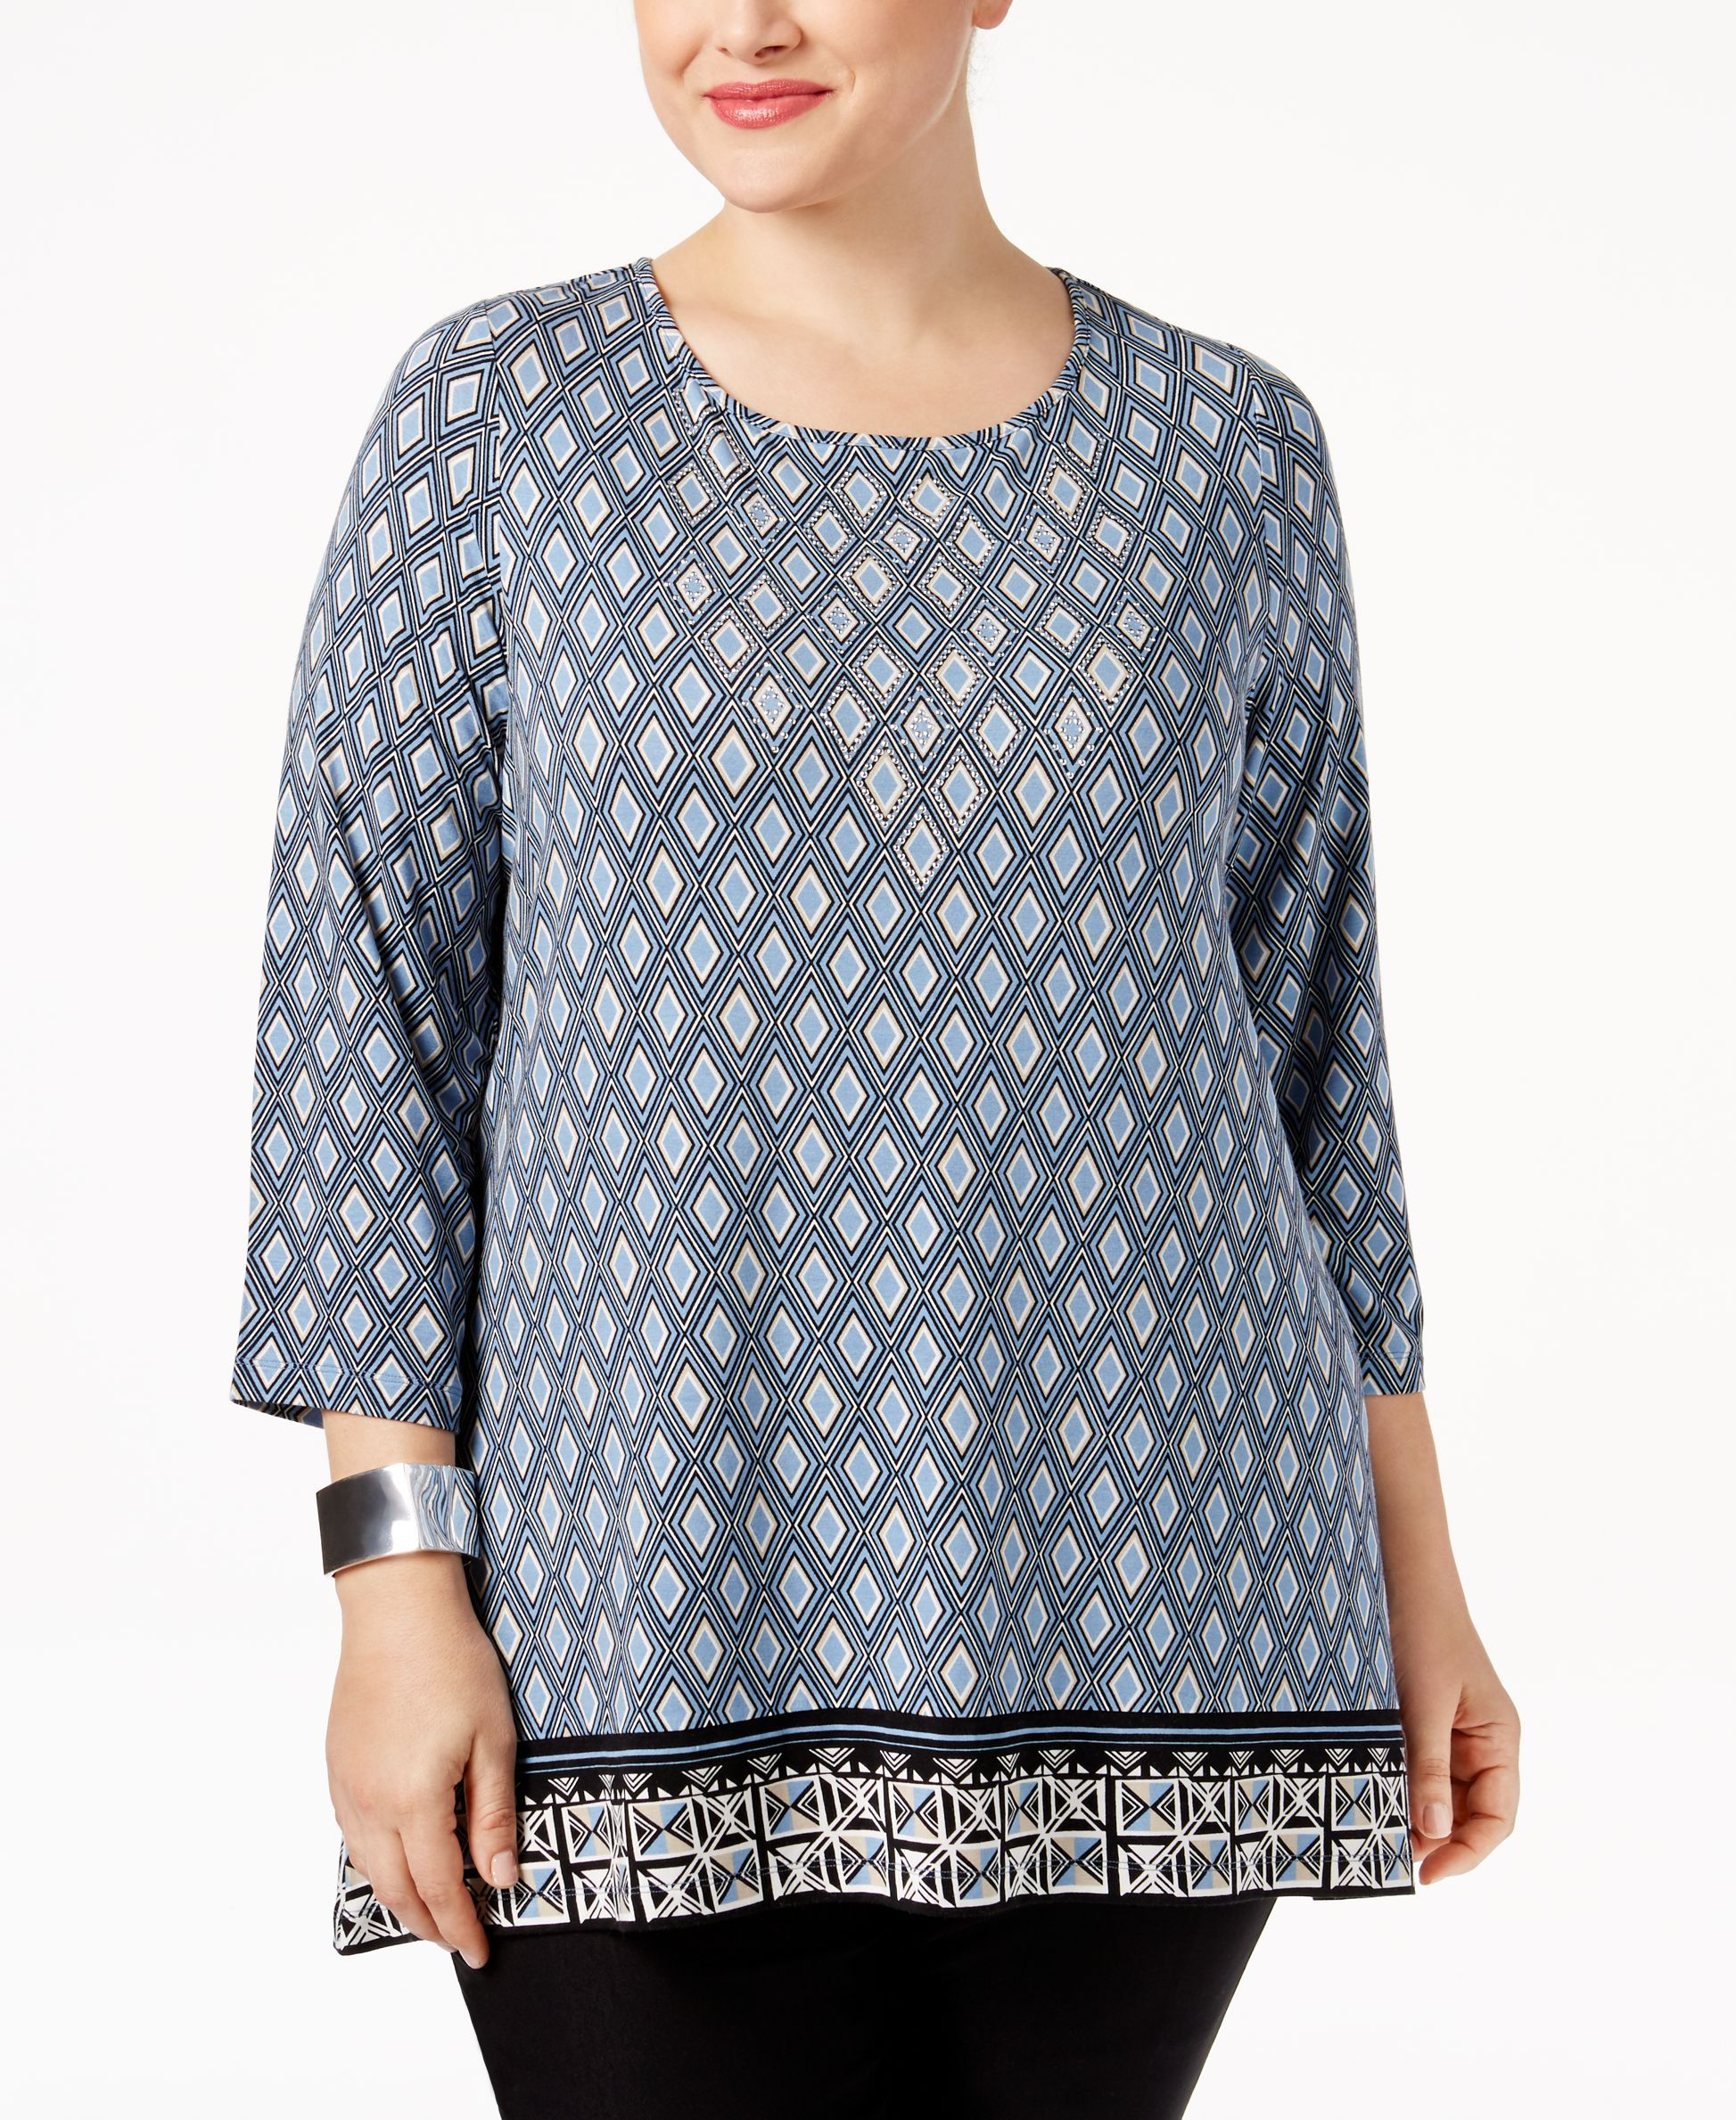 Jm Collection Plus Size Rhinestone Printed Top, Only at Macy's